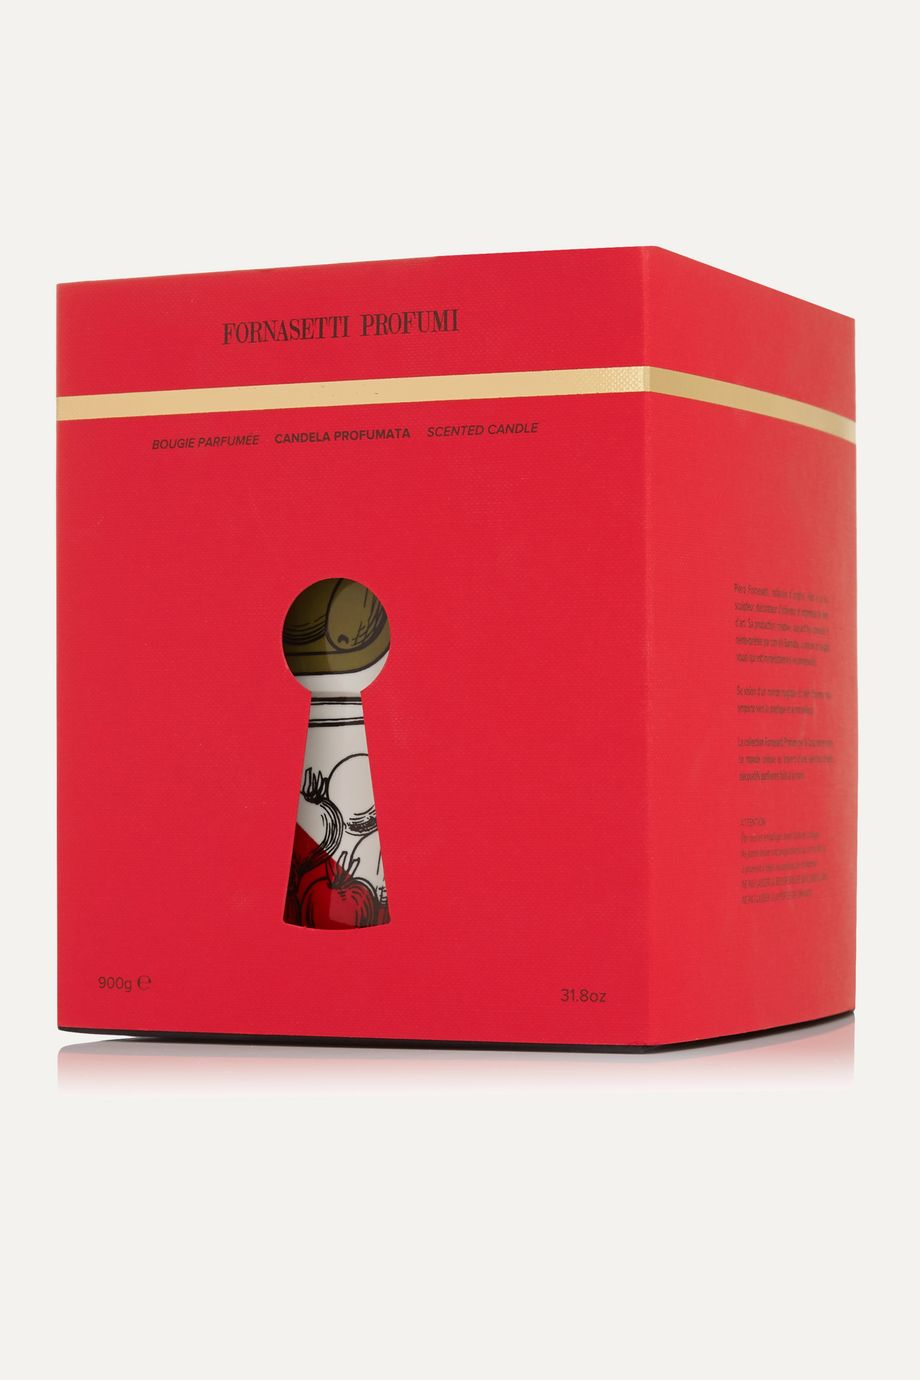 Fornasetti Cocktail scented candle, 900g